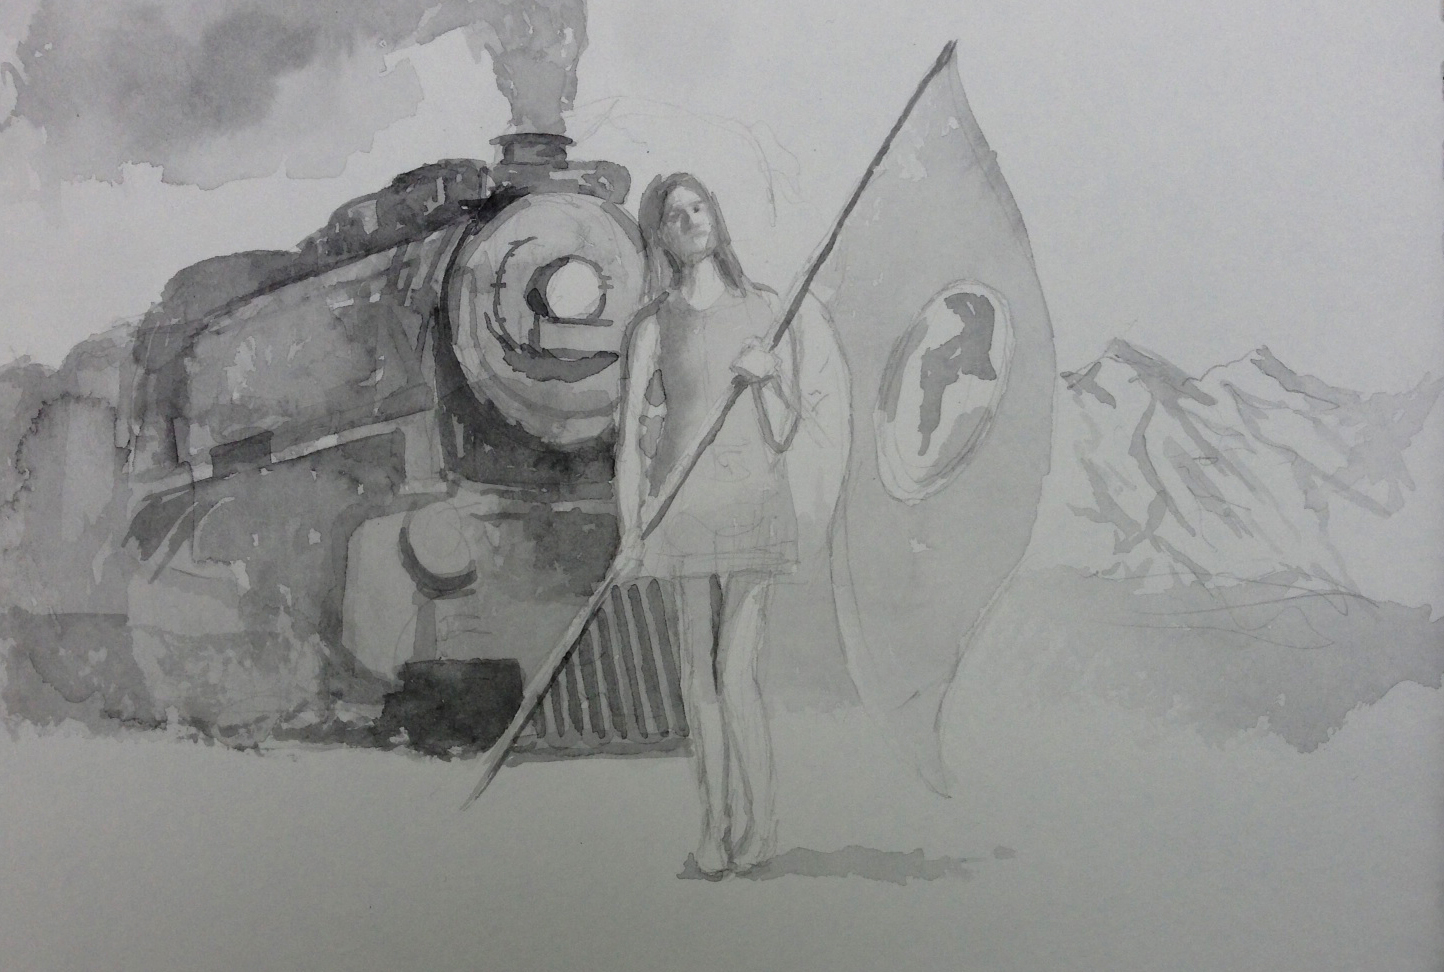 Standing Woman with World Flag, Train and Mountains in Background